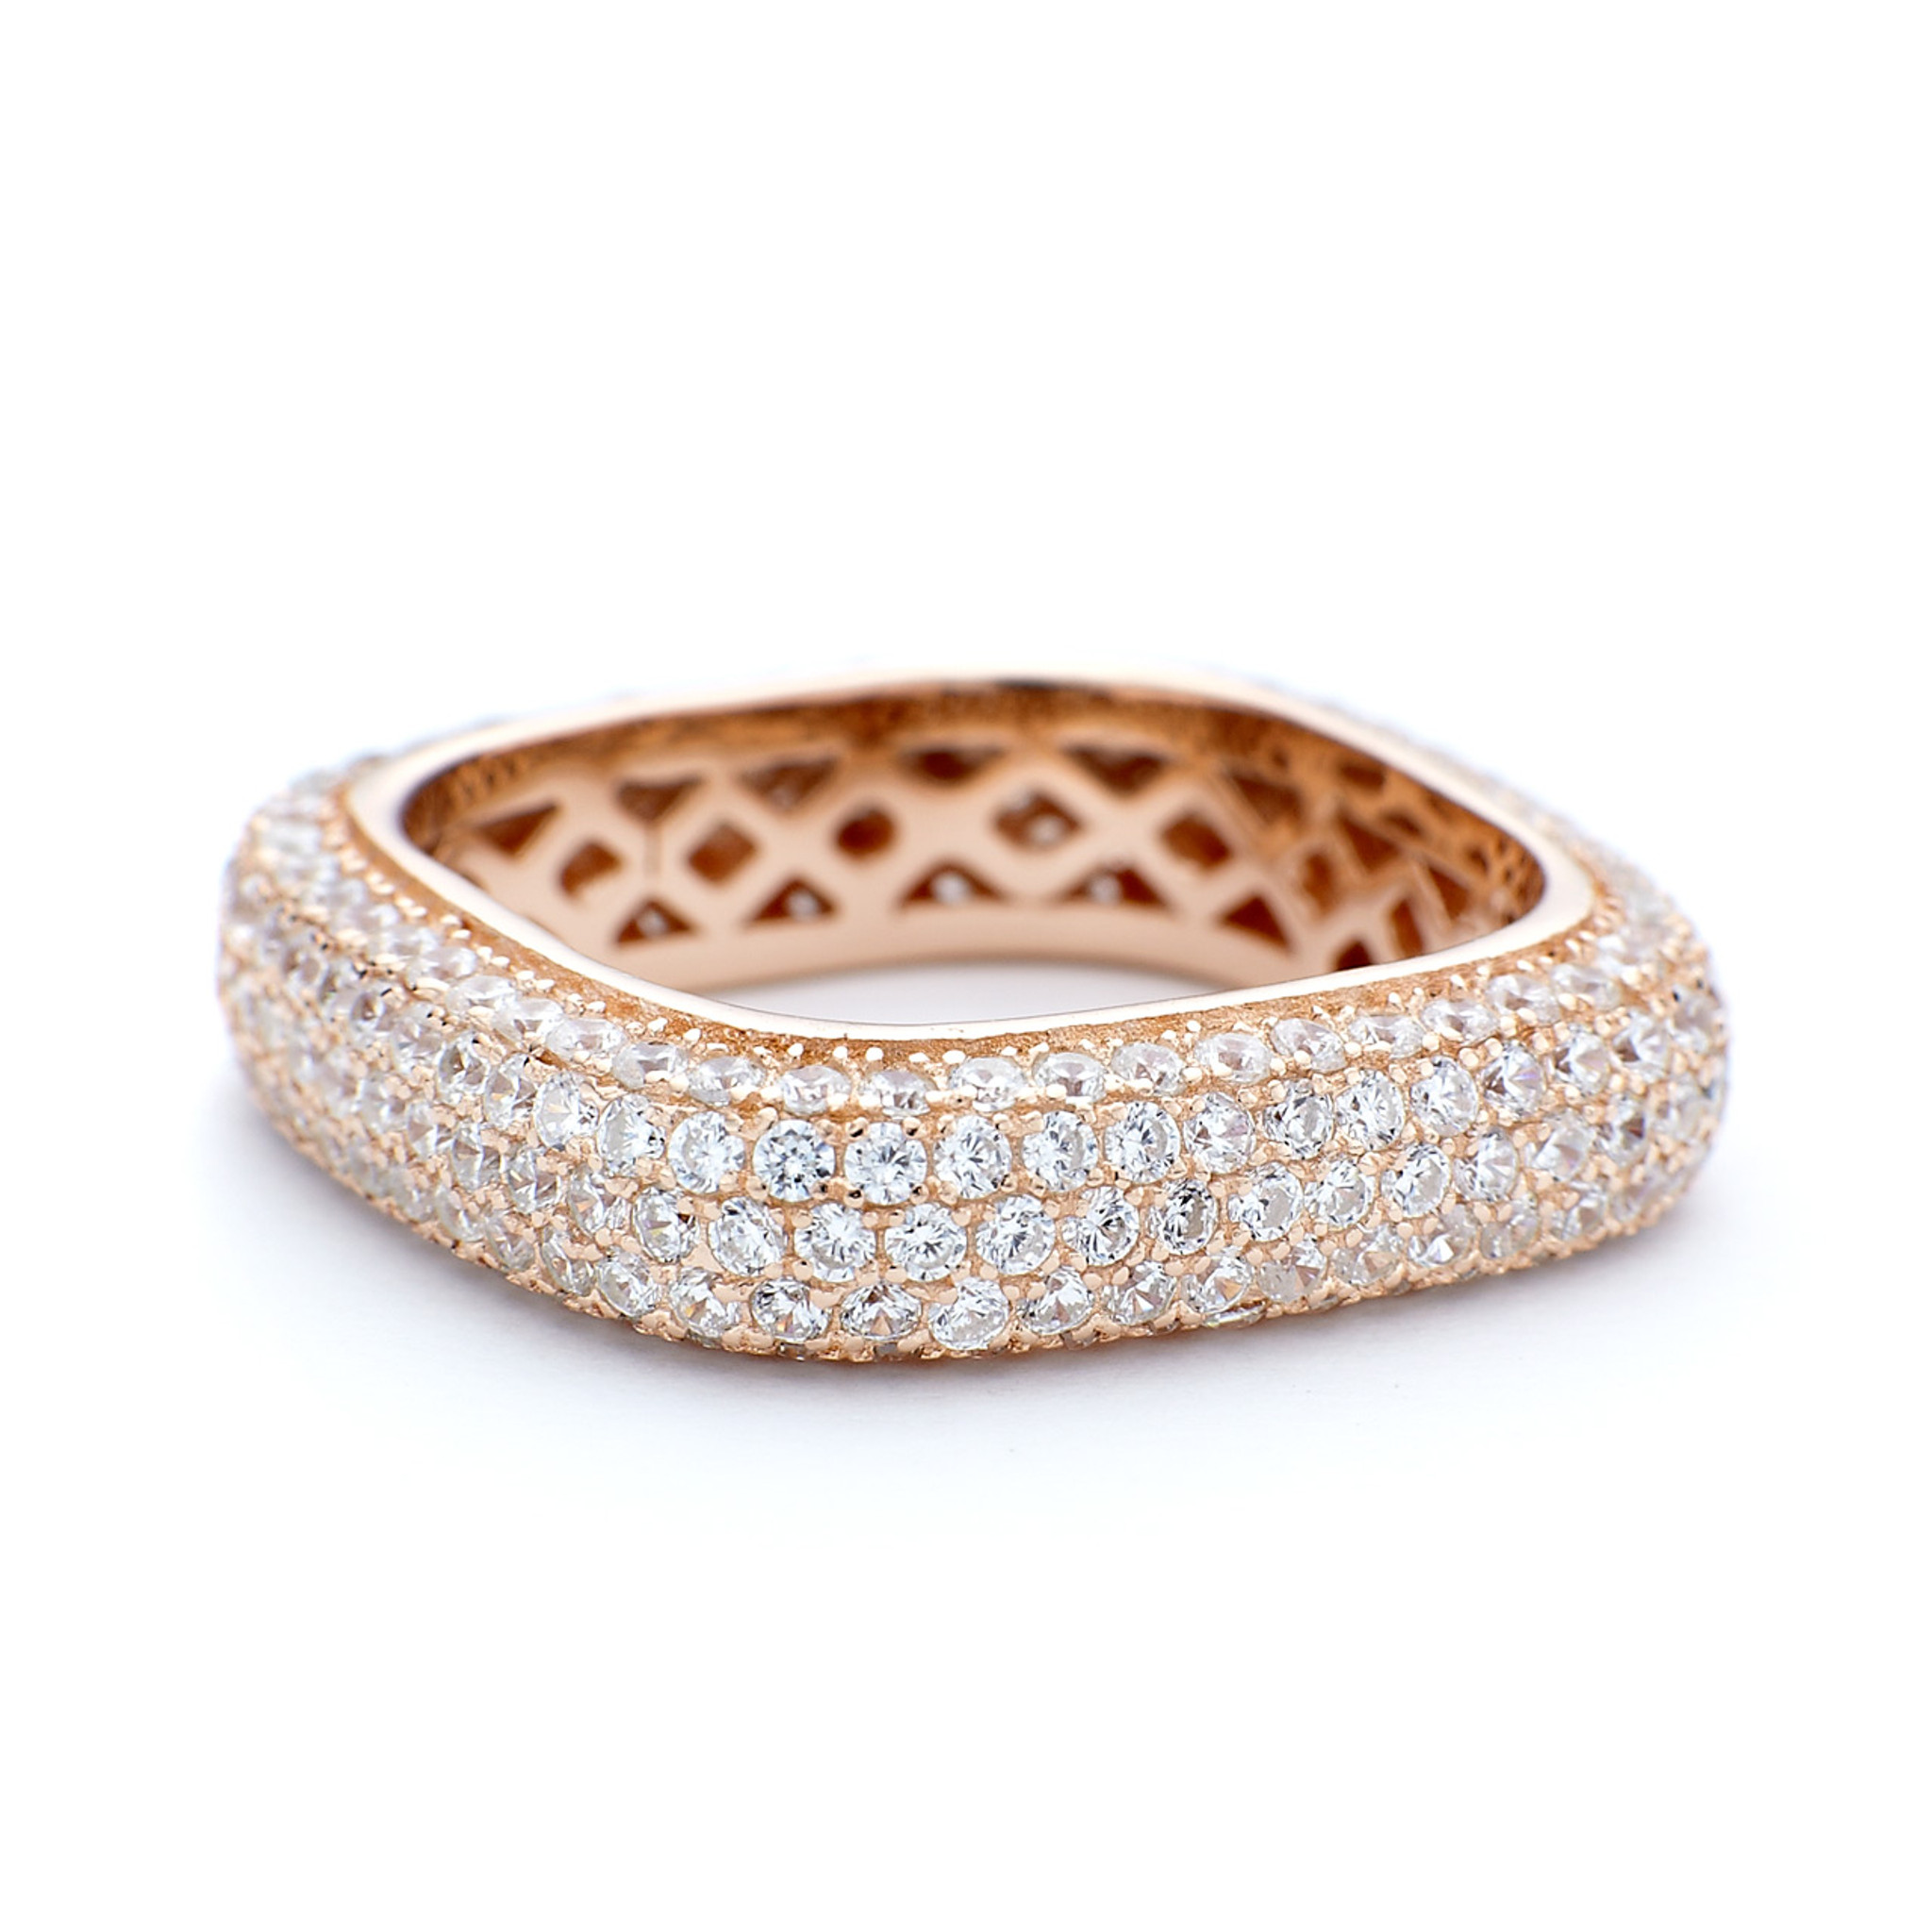 4f2eea84b Rose gold square ring 5mm thick. Sterling silver with CZ crystals.